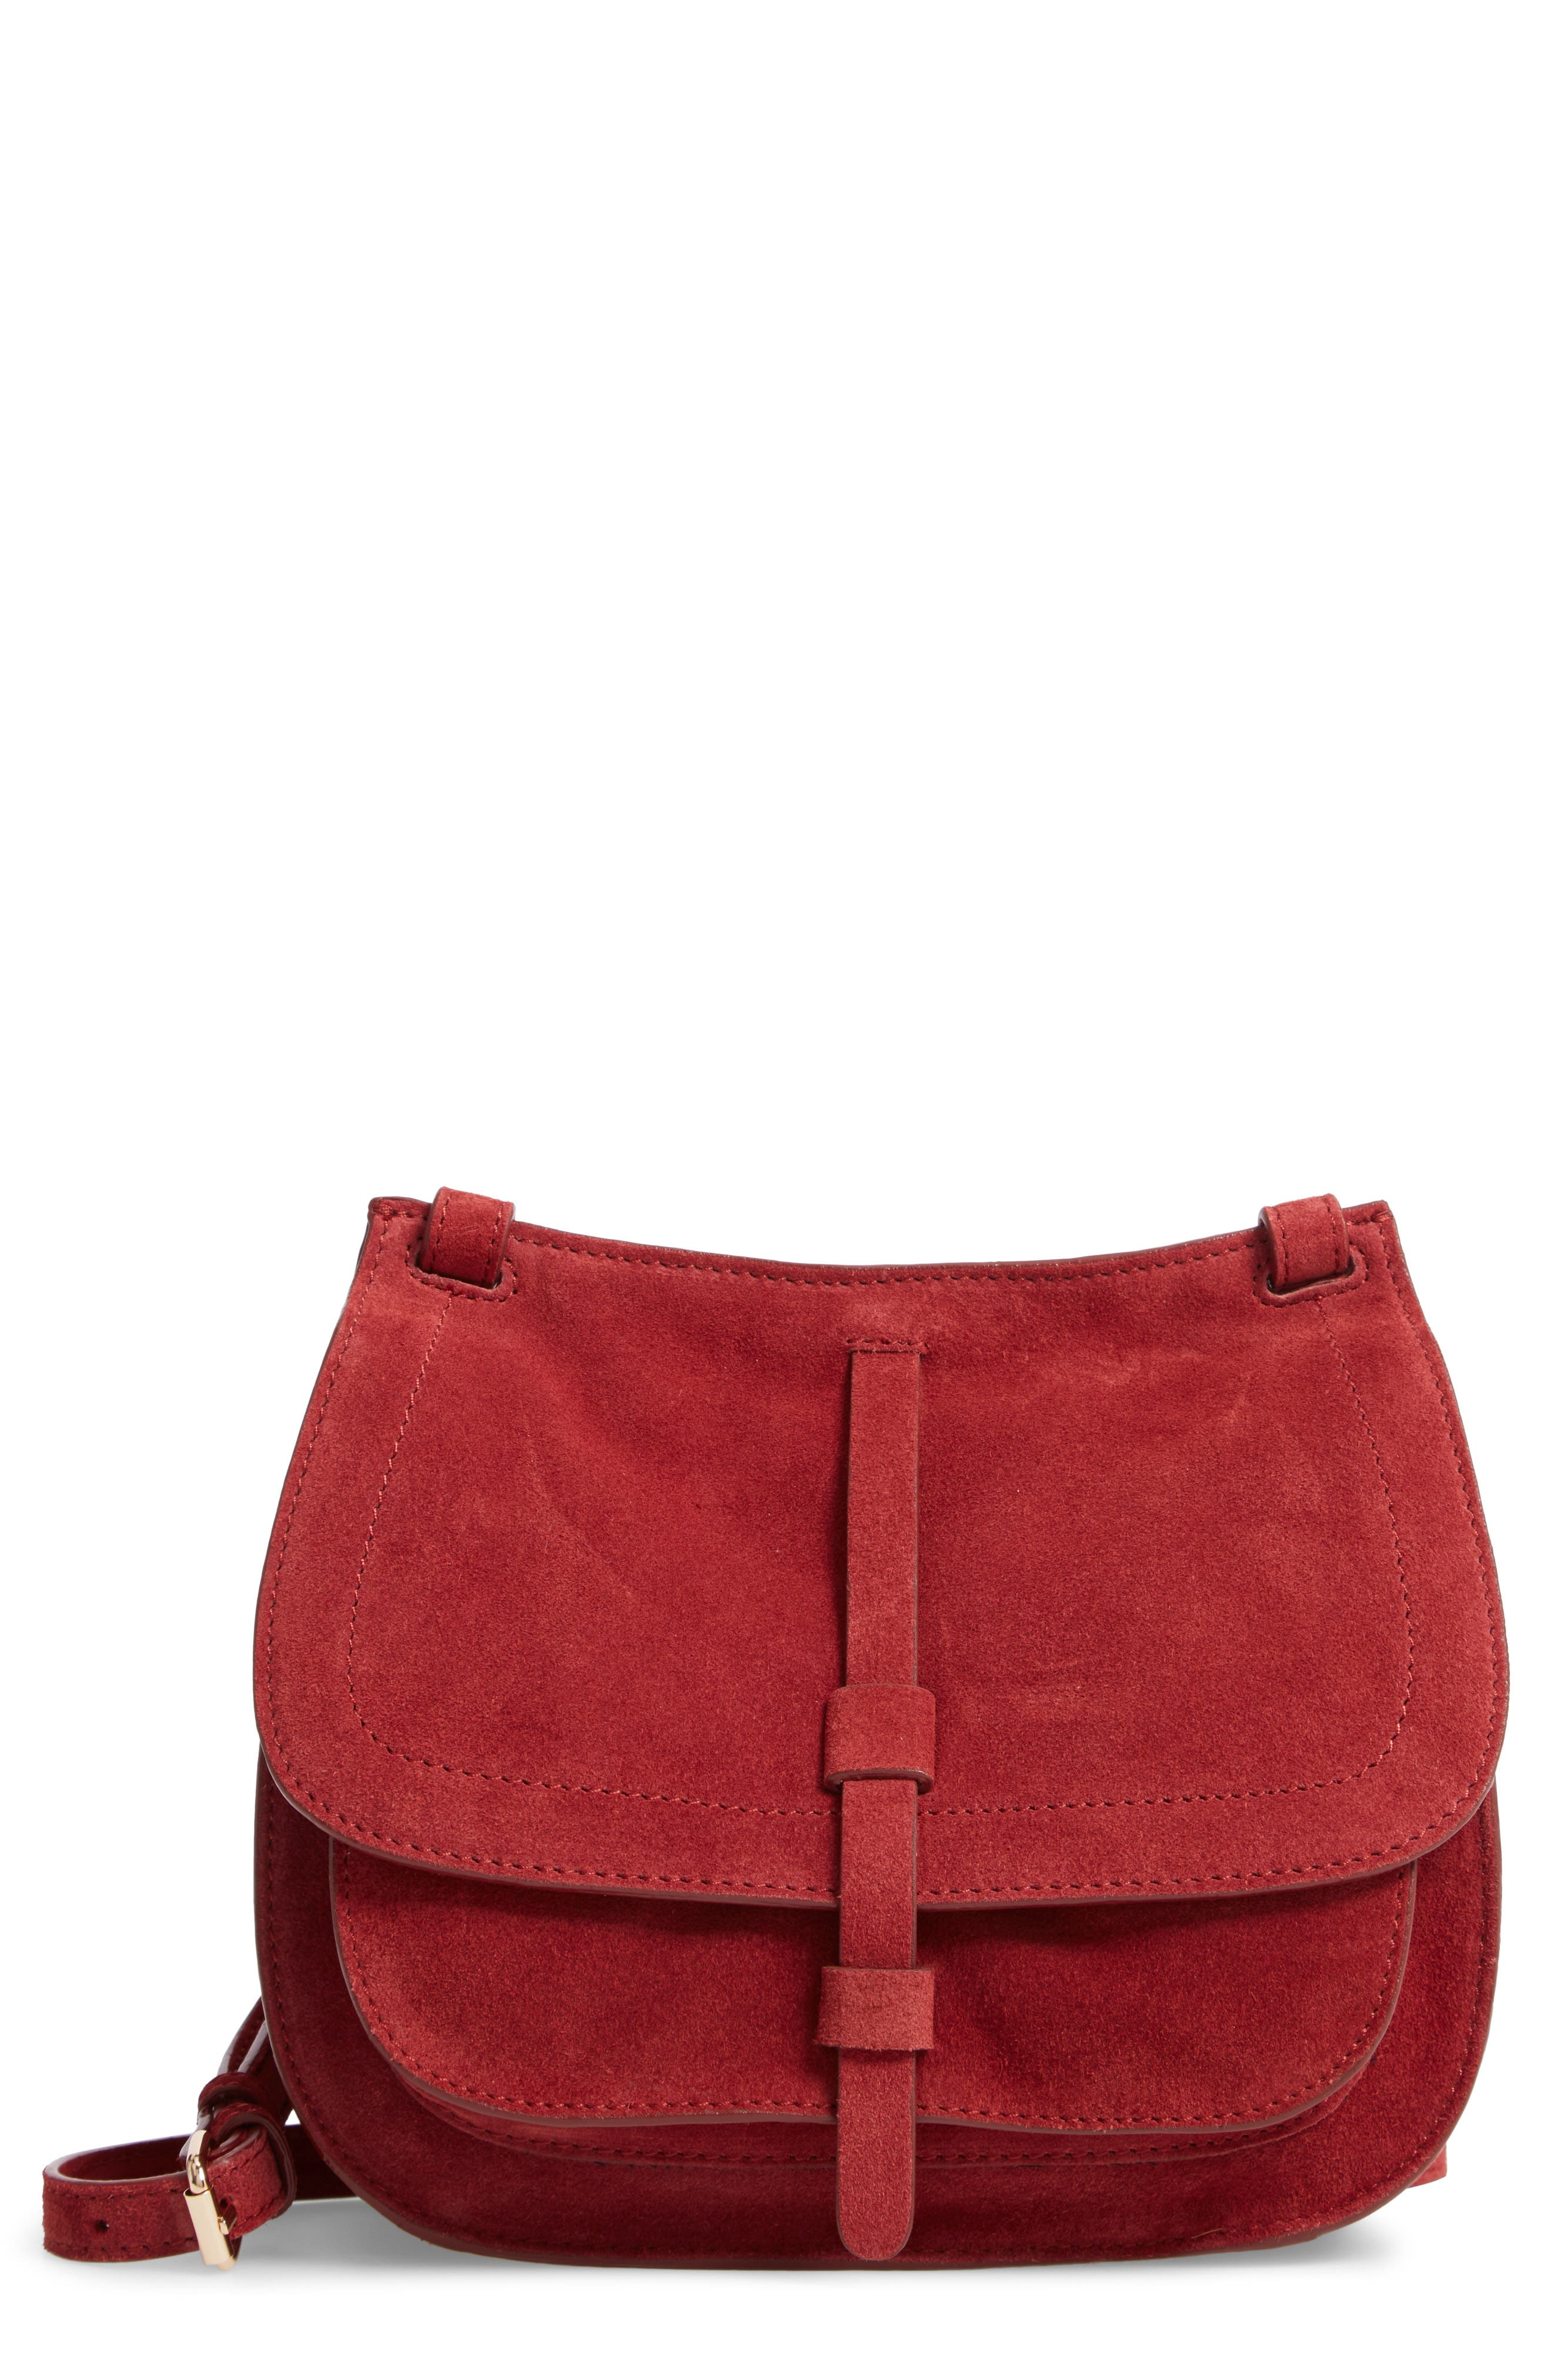 LEITH Suede Crossbody Saddle Bag, Main, color, 805